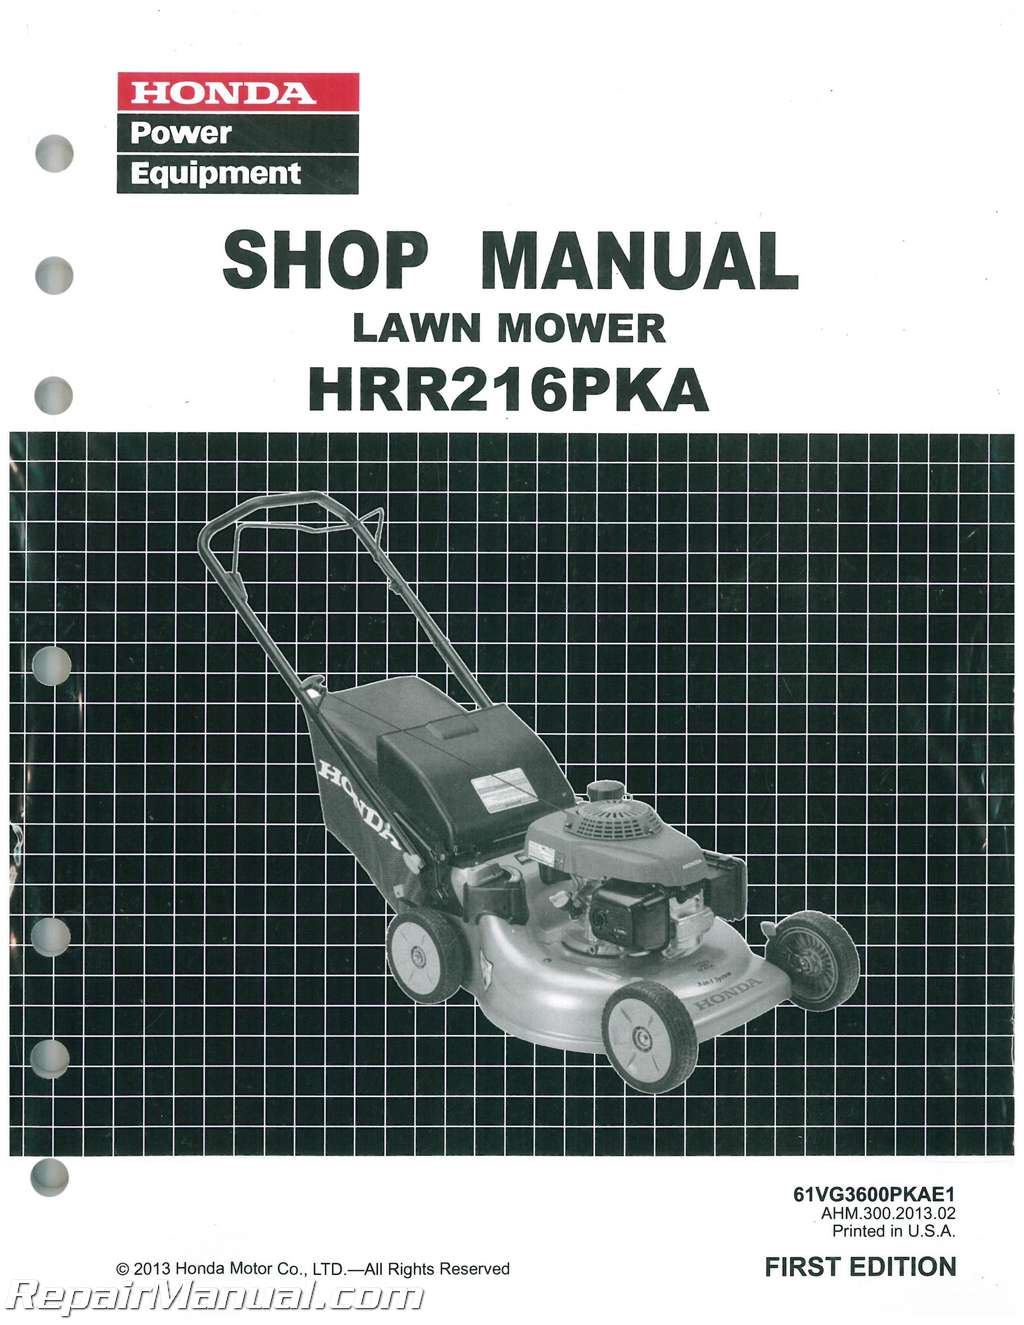 Honda Hrr216pka K8 K9 Lawn Mower Shop Manual